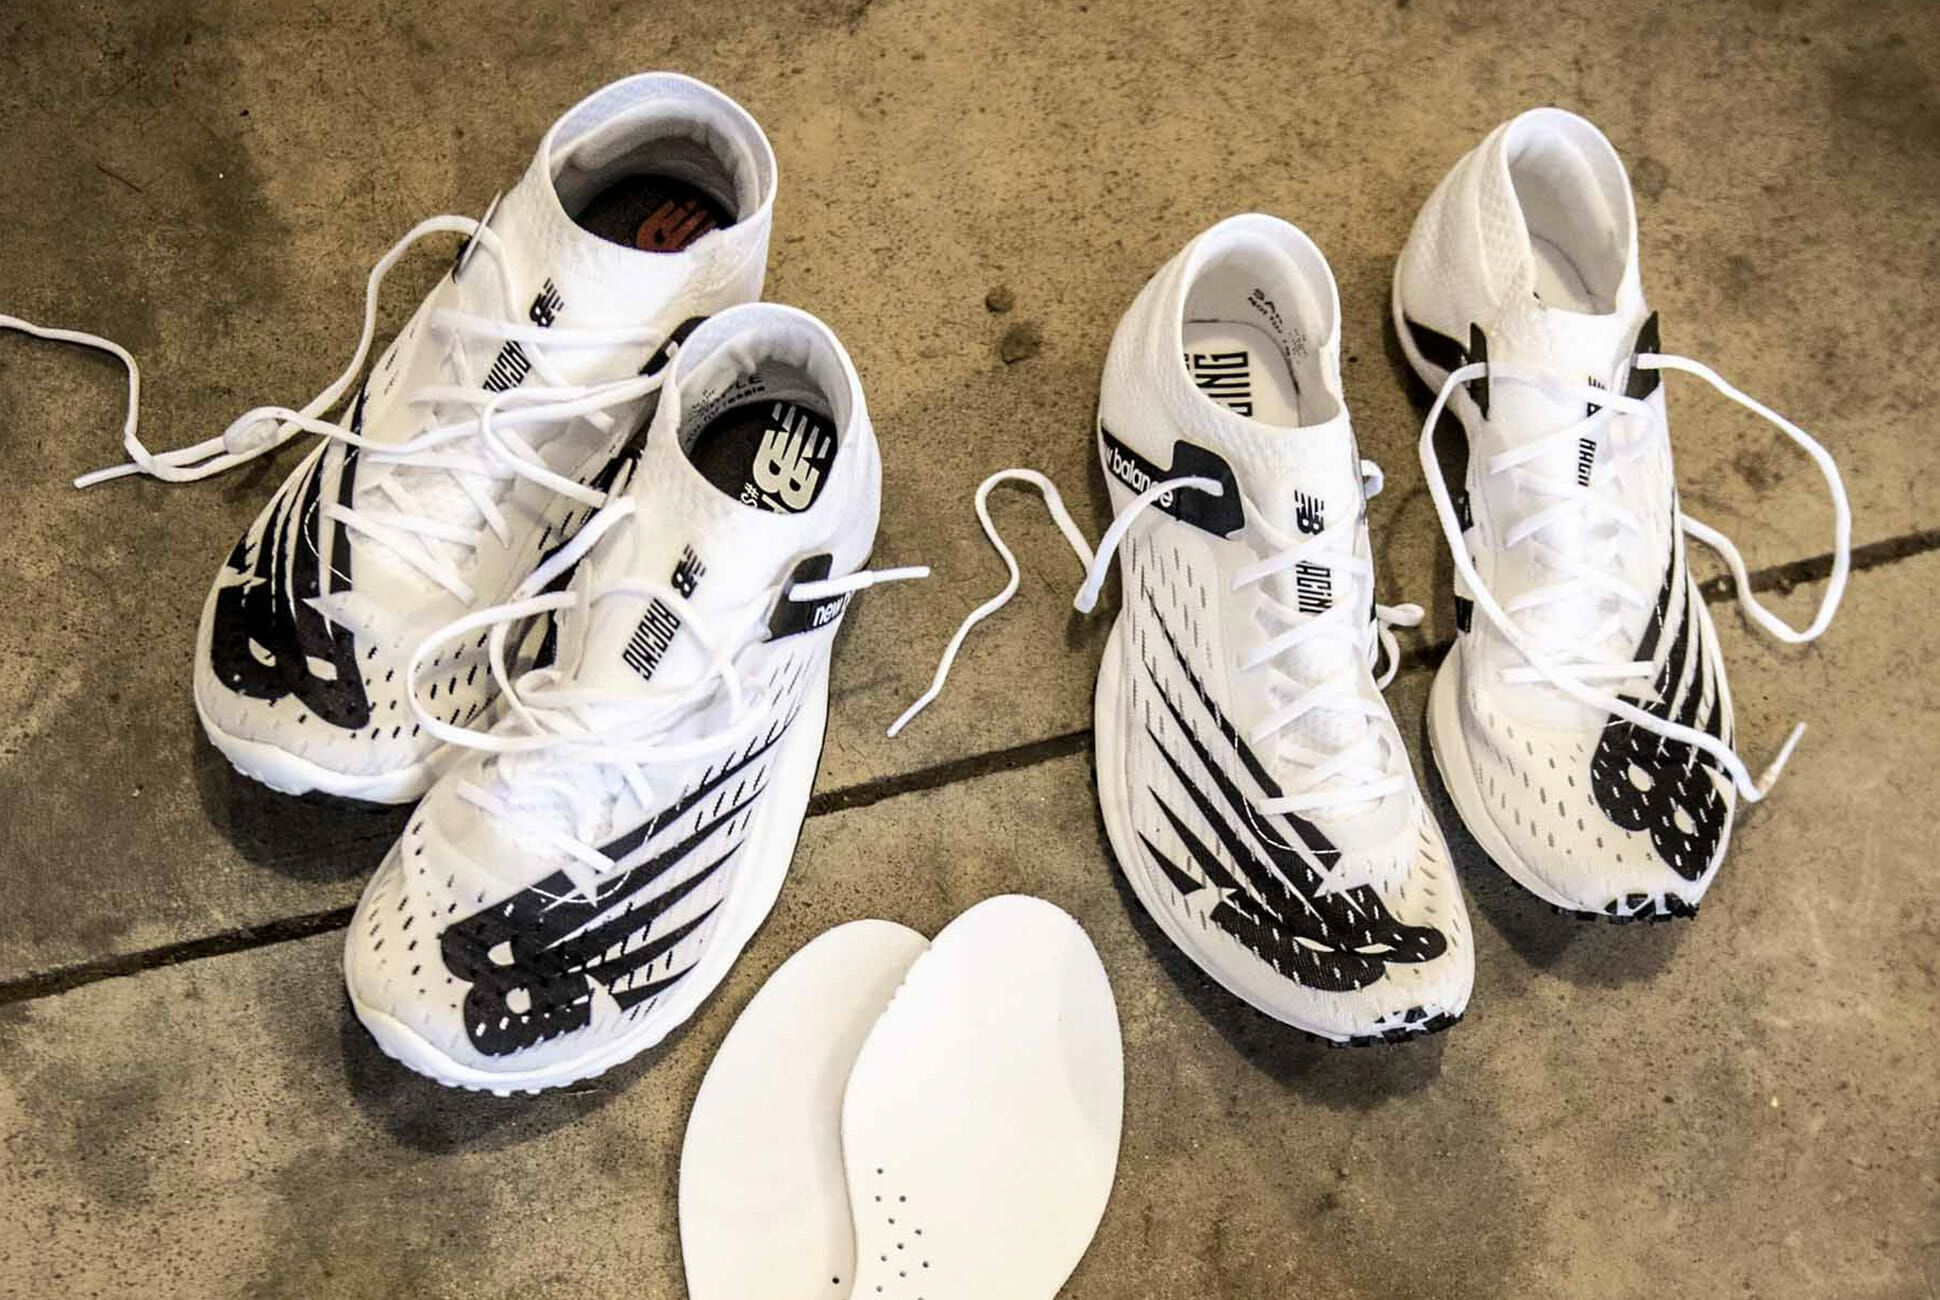 New-Balance-FuelCell-Sneakers-gear-patrol-slide-3